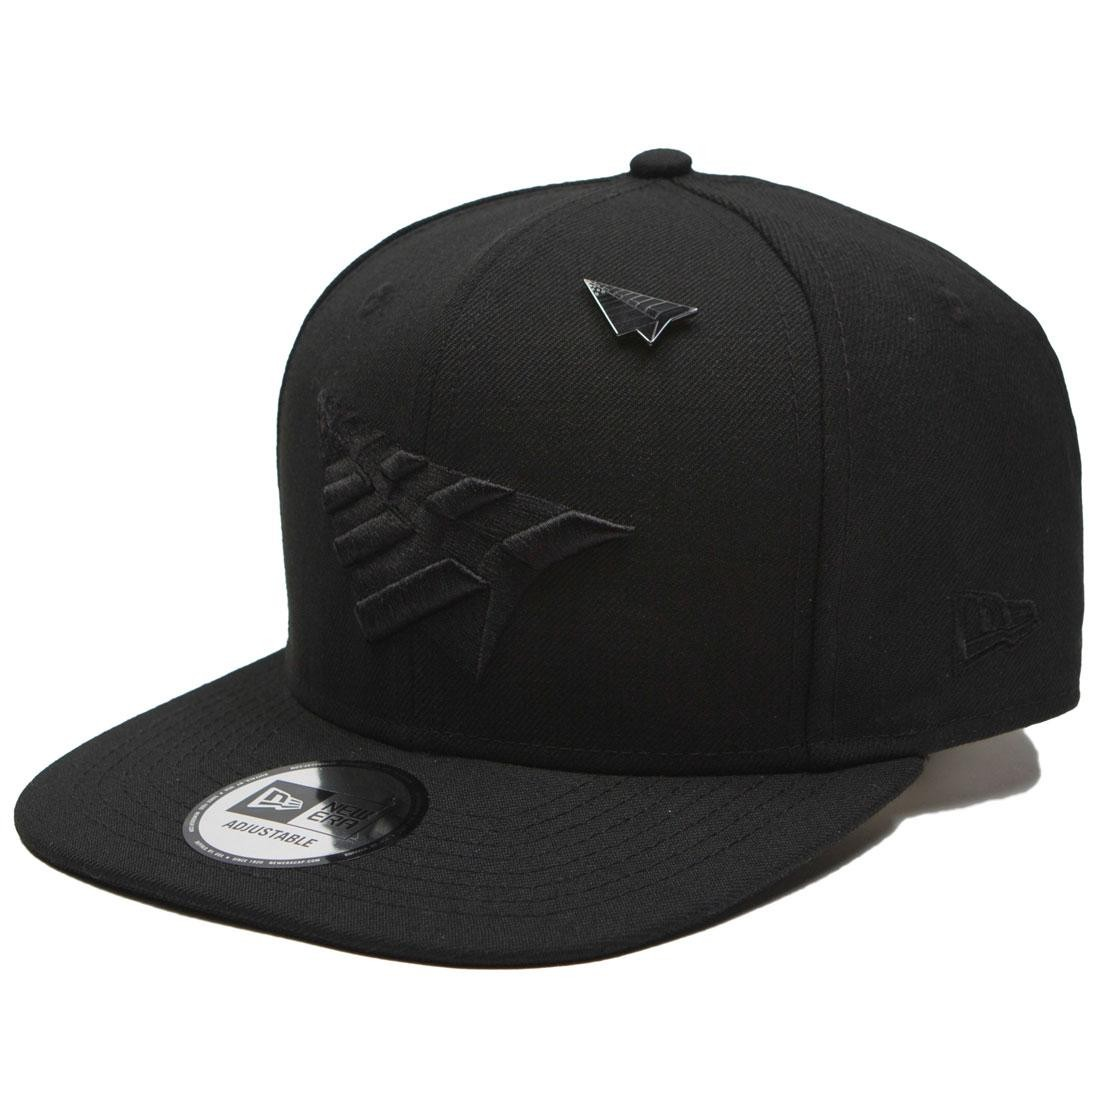 Roc Nation The Crown Snapback Cap With Pin - Blackout black black 2235559854d